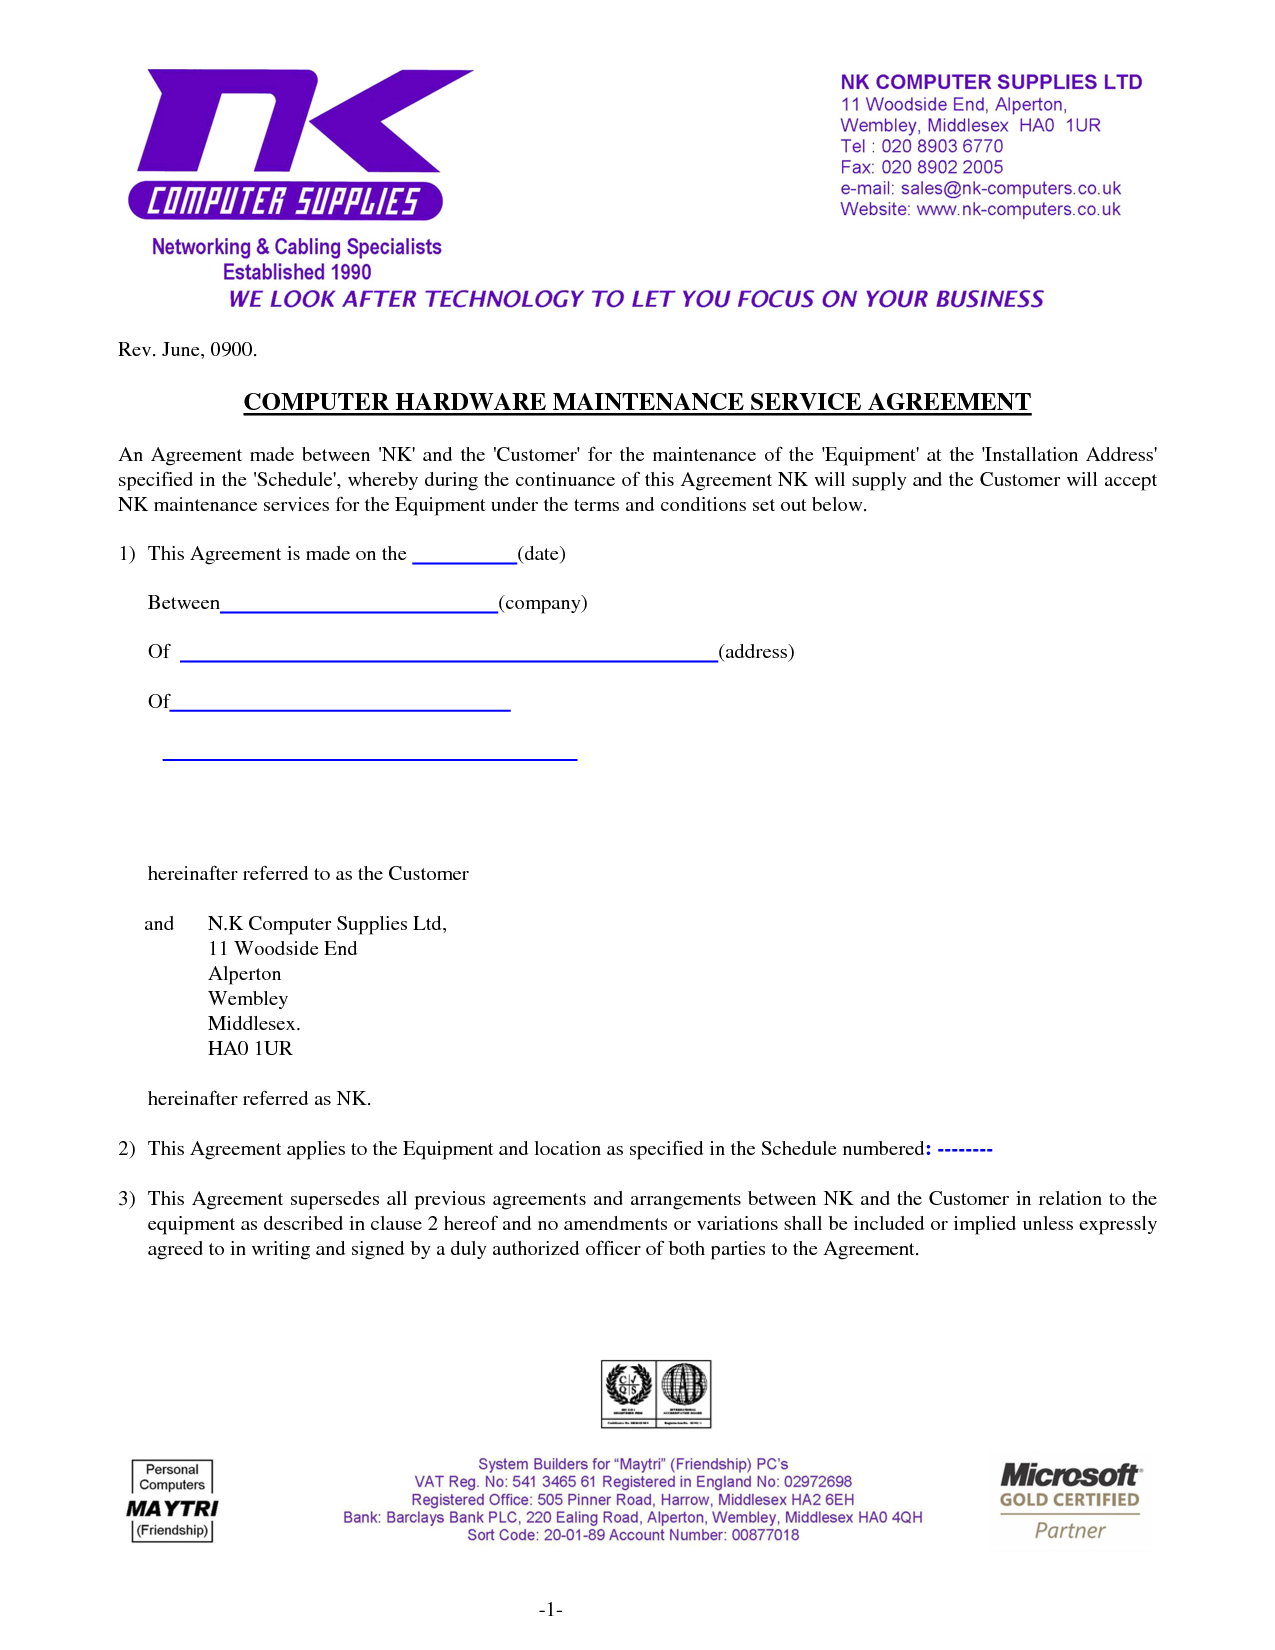 Computer Support: Computer Support Agreement Sample   Software Support  Agreement Template